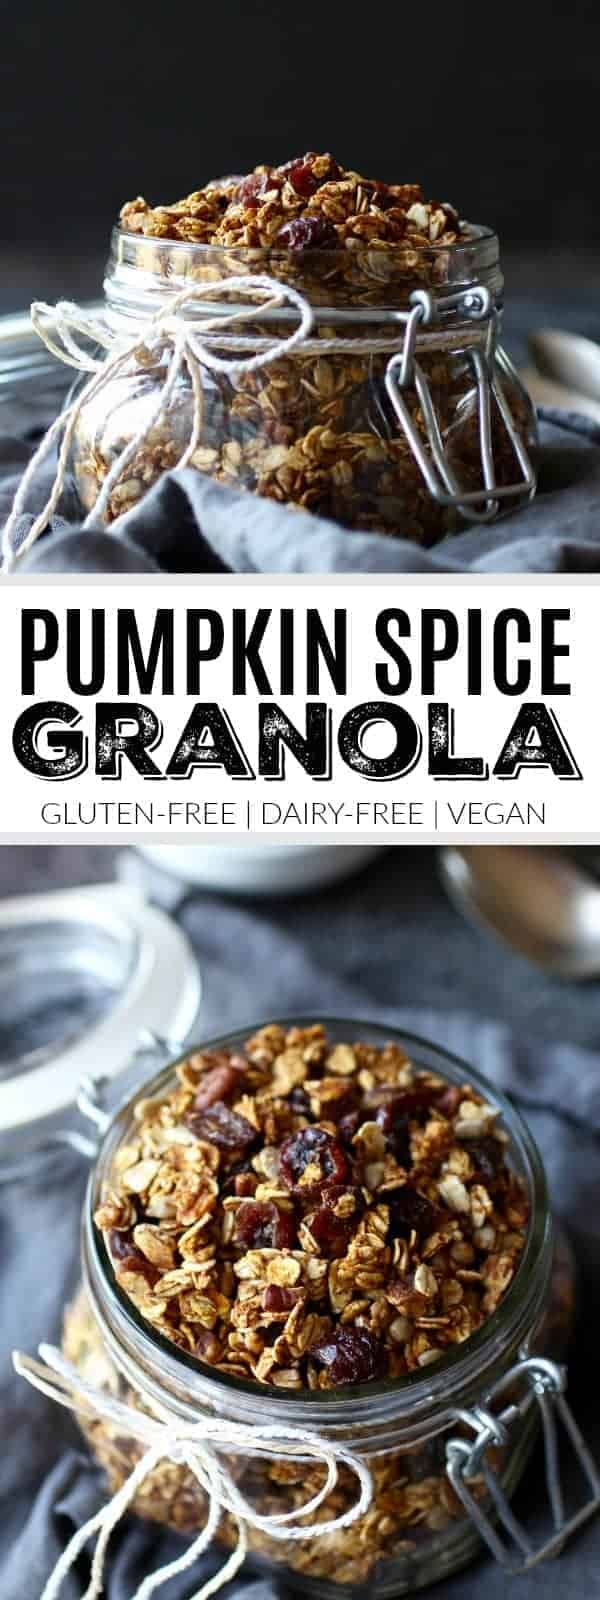 Pinterest image for Pumpkin Spice Granola